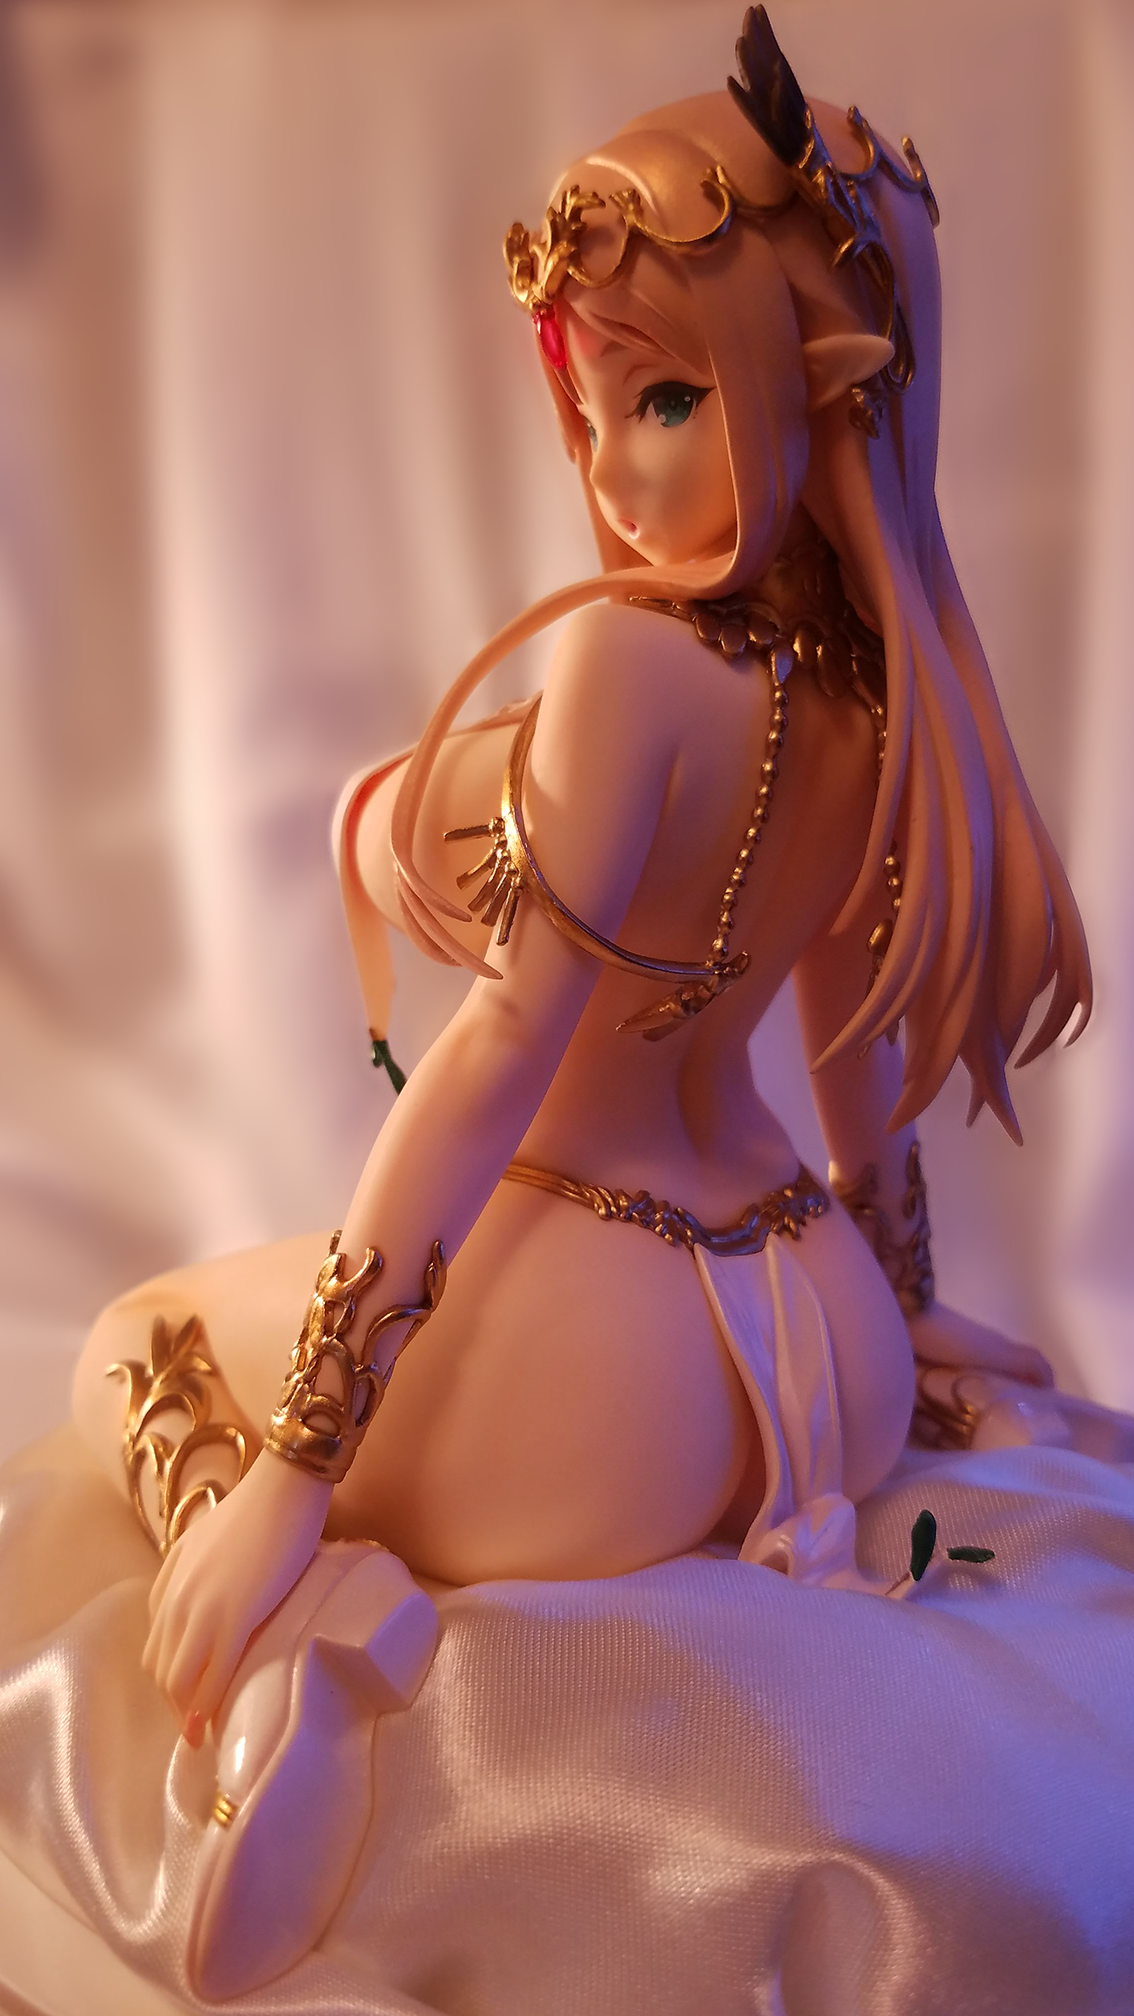 https://static.myfigurecollection.net/upload/pictures/2020/09/26/2528057.png